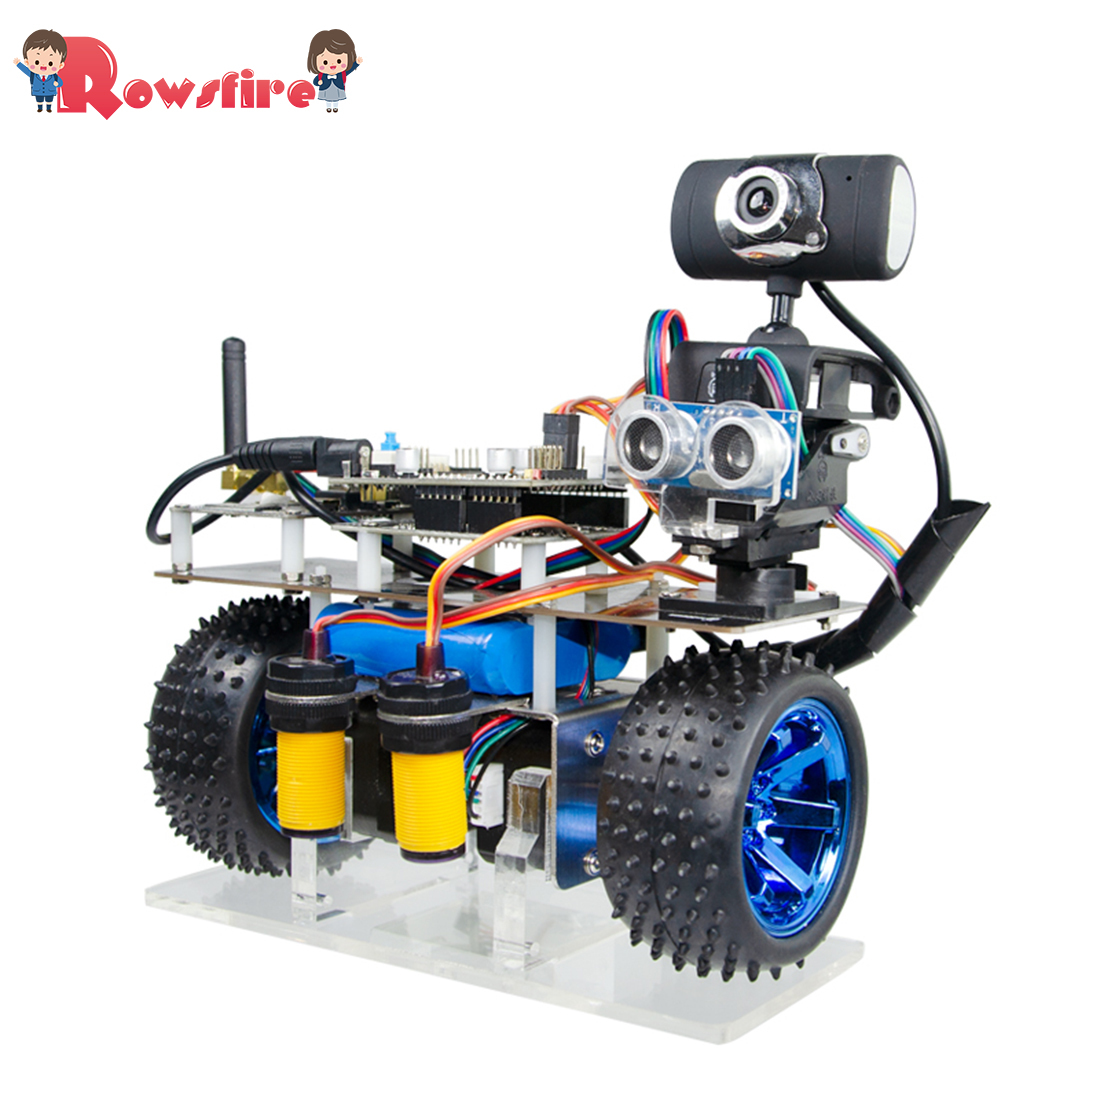 Programmable Intelligent Balance Car WiFi Video Robot Car Support IOS/Android APP RC For STM32 Patrol Obstacle Avoidance Version